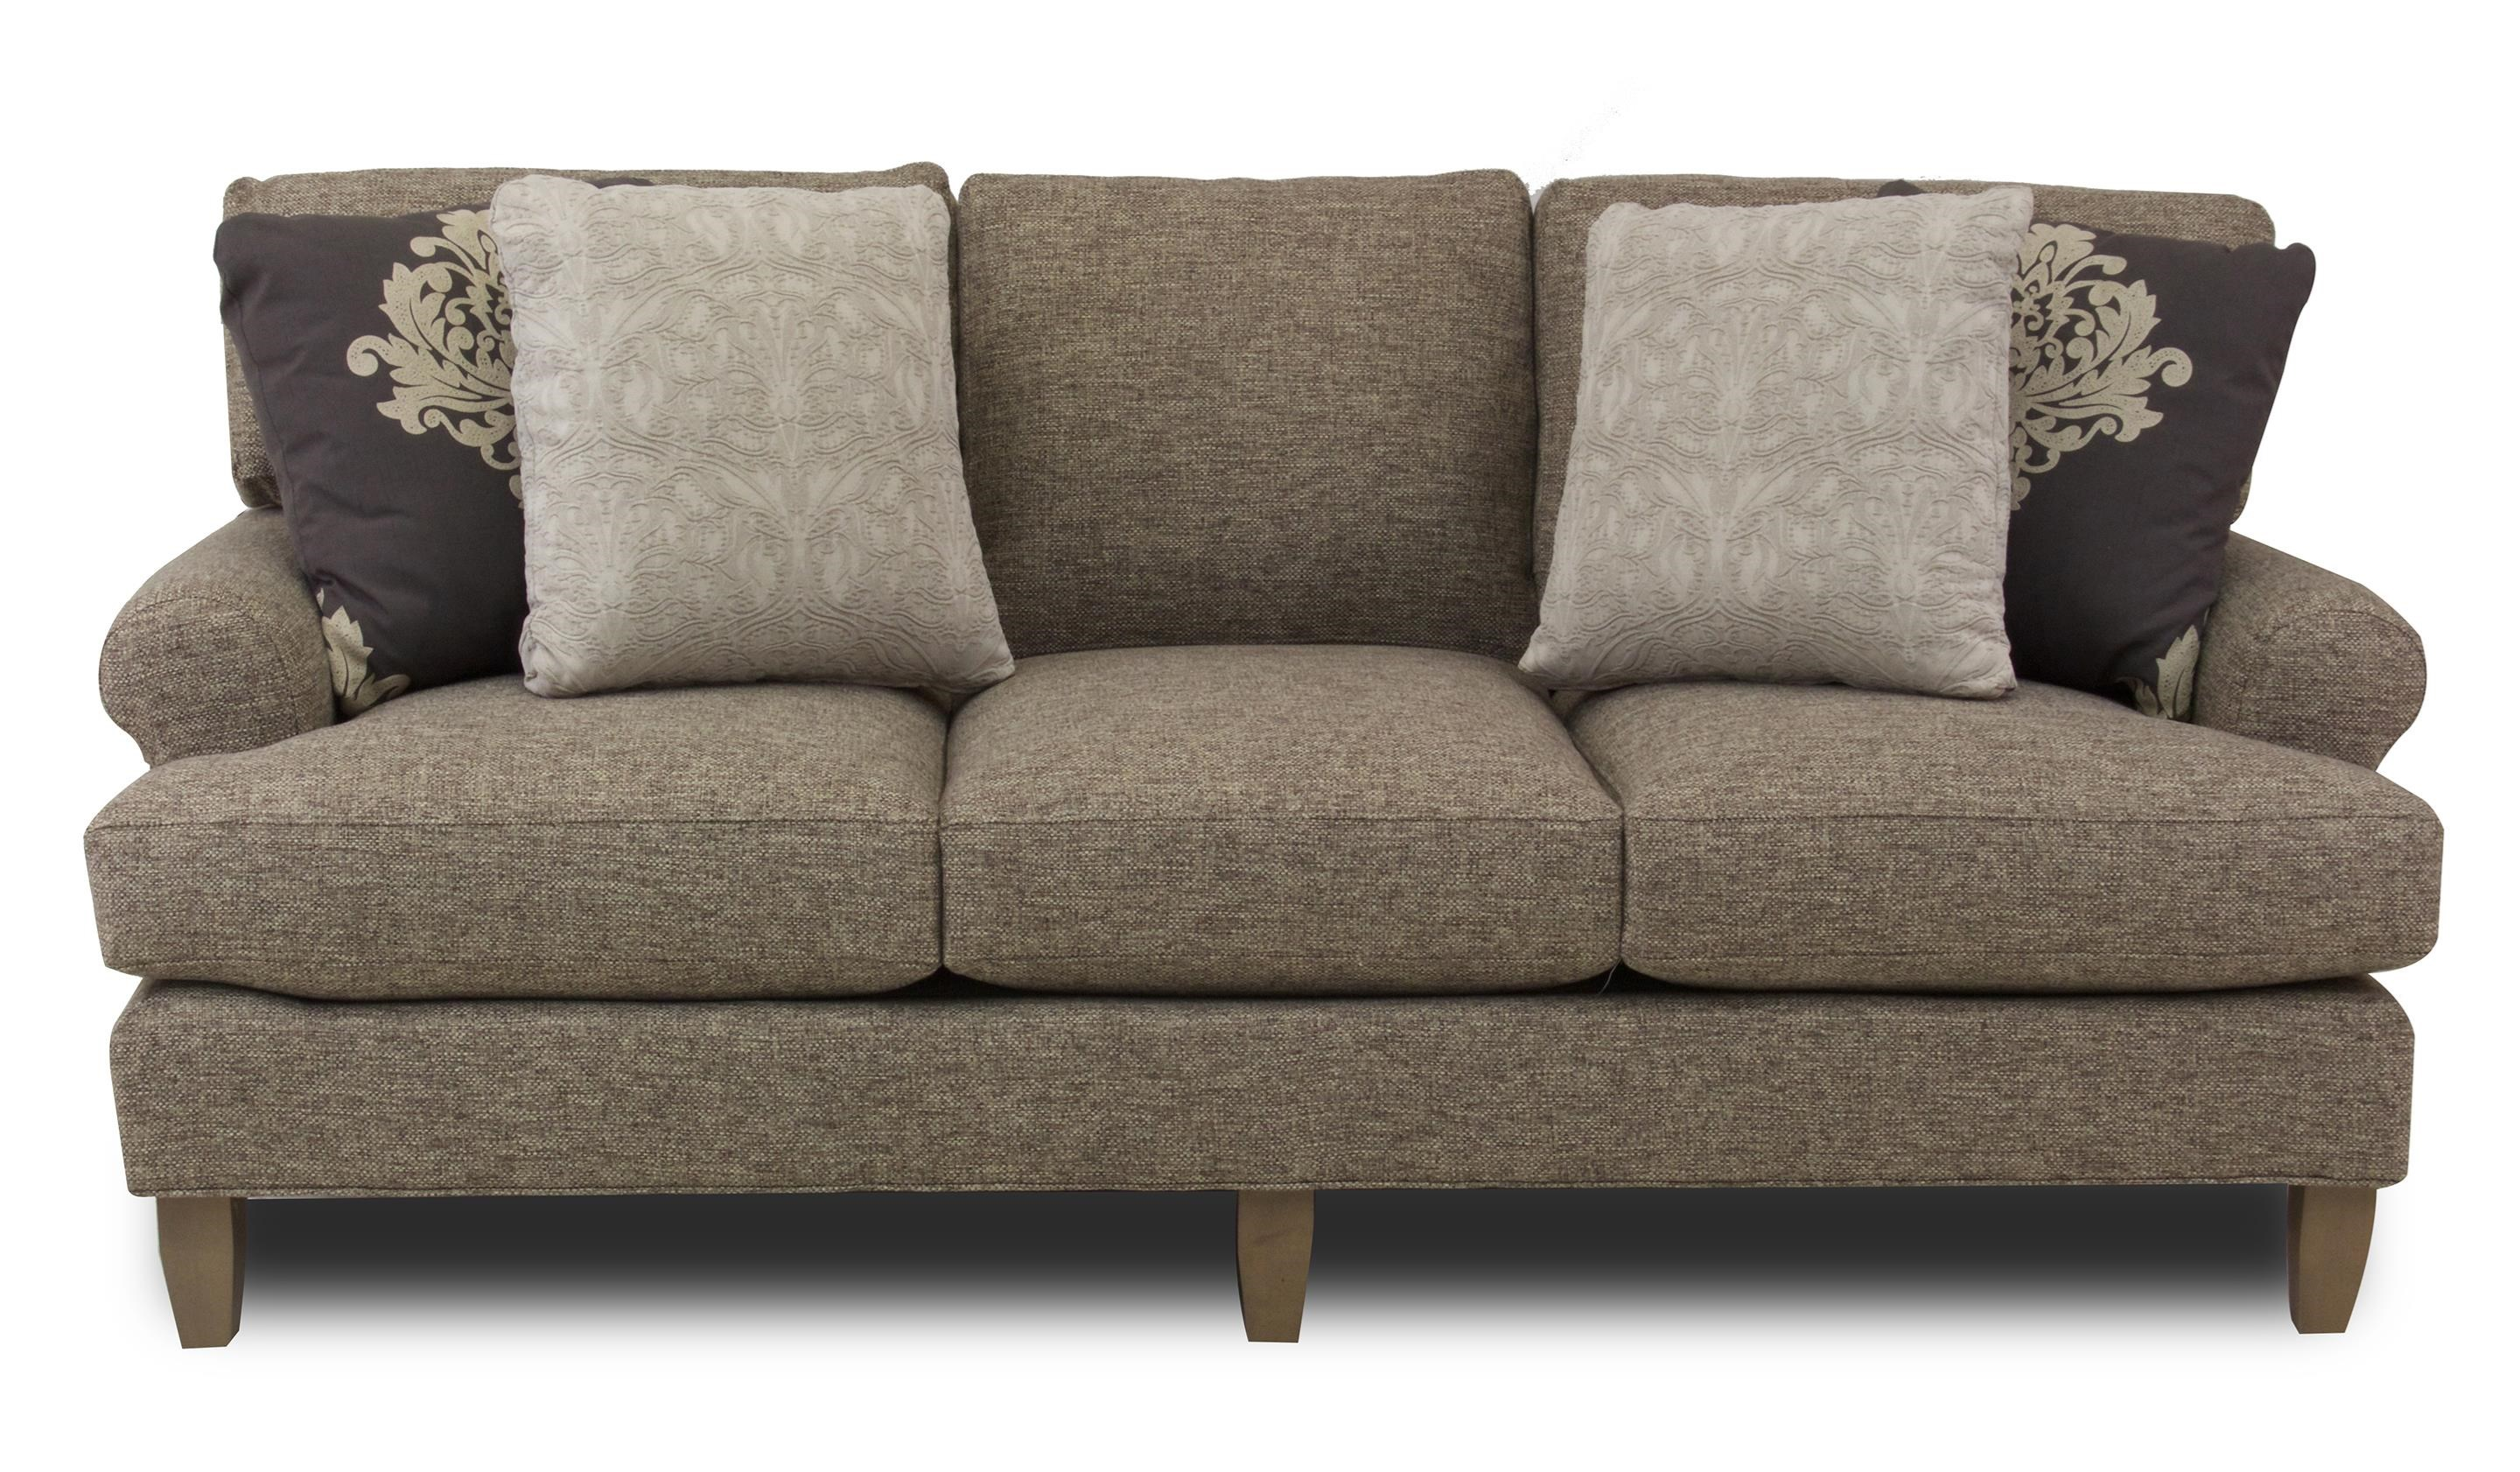 Sofa S Latte Transitional Sofa By Hickory Craft At Ruby Gordon Home